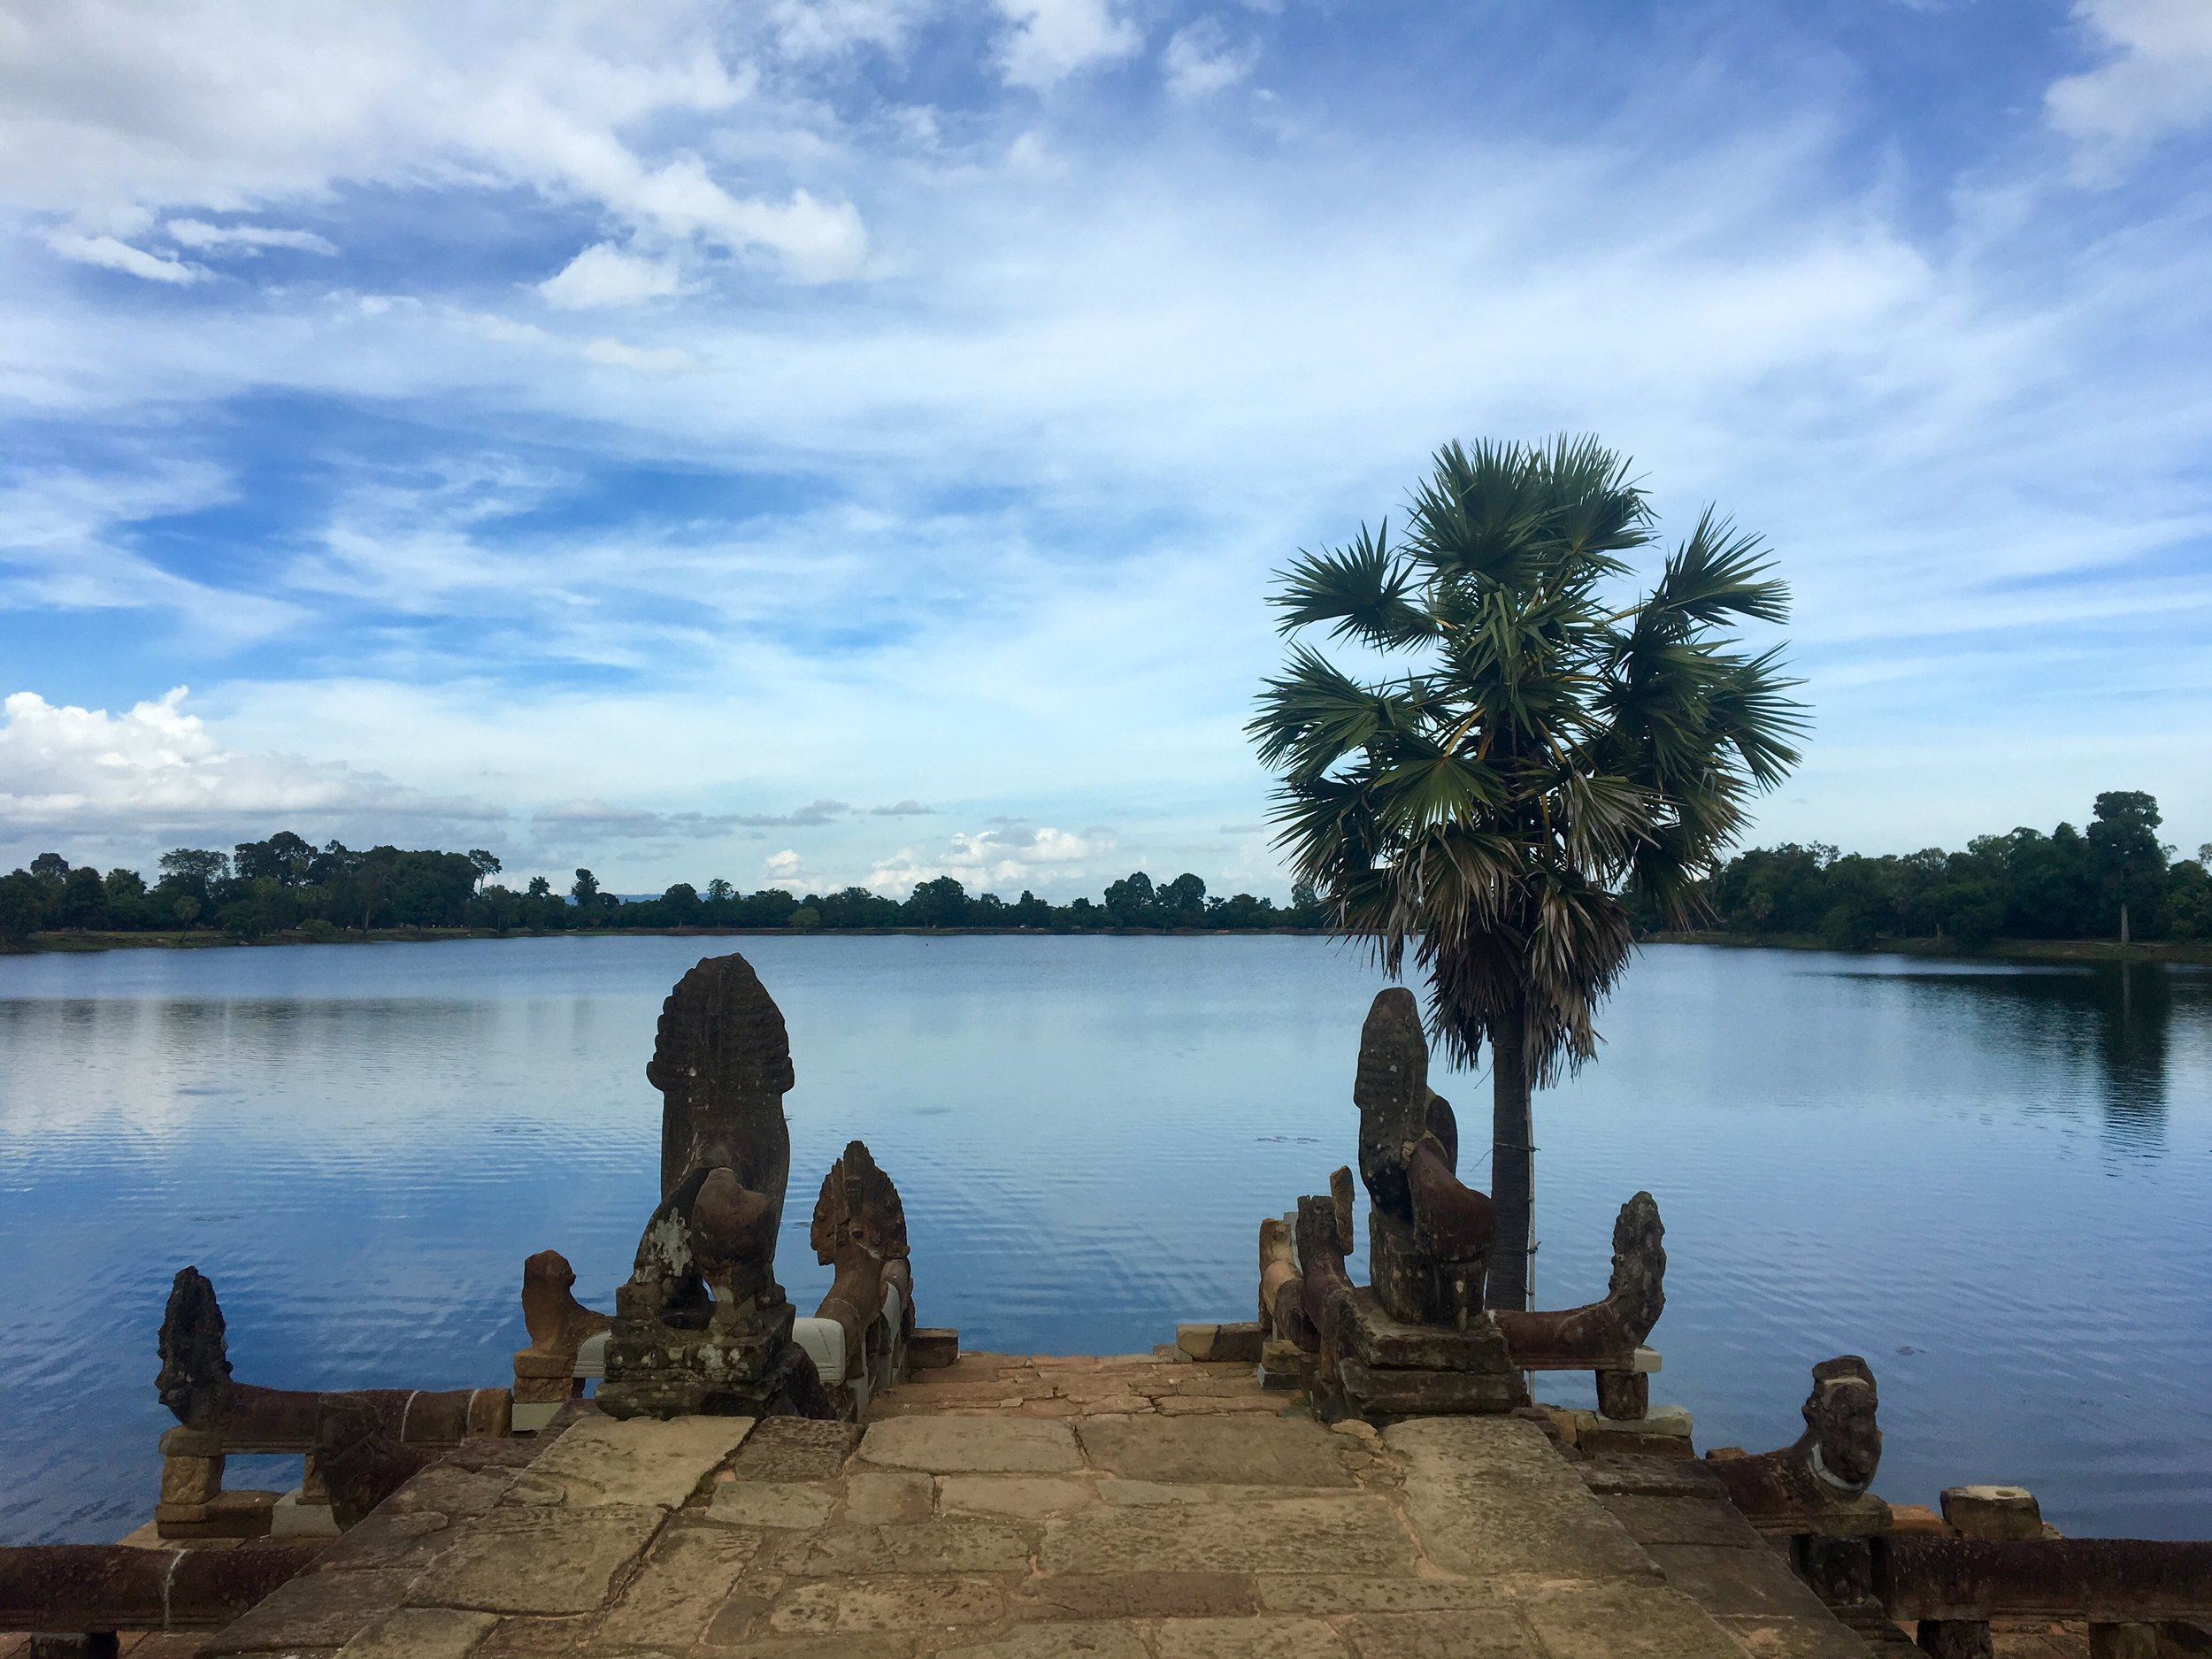 Srah Srang - a nice lake in the temples